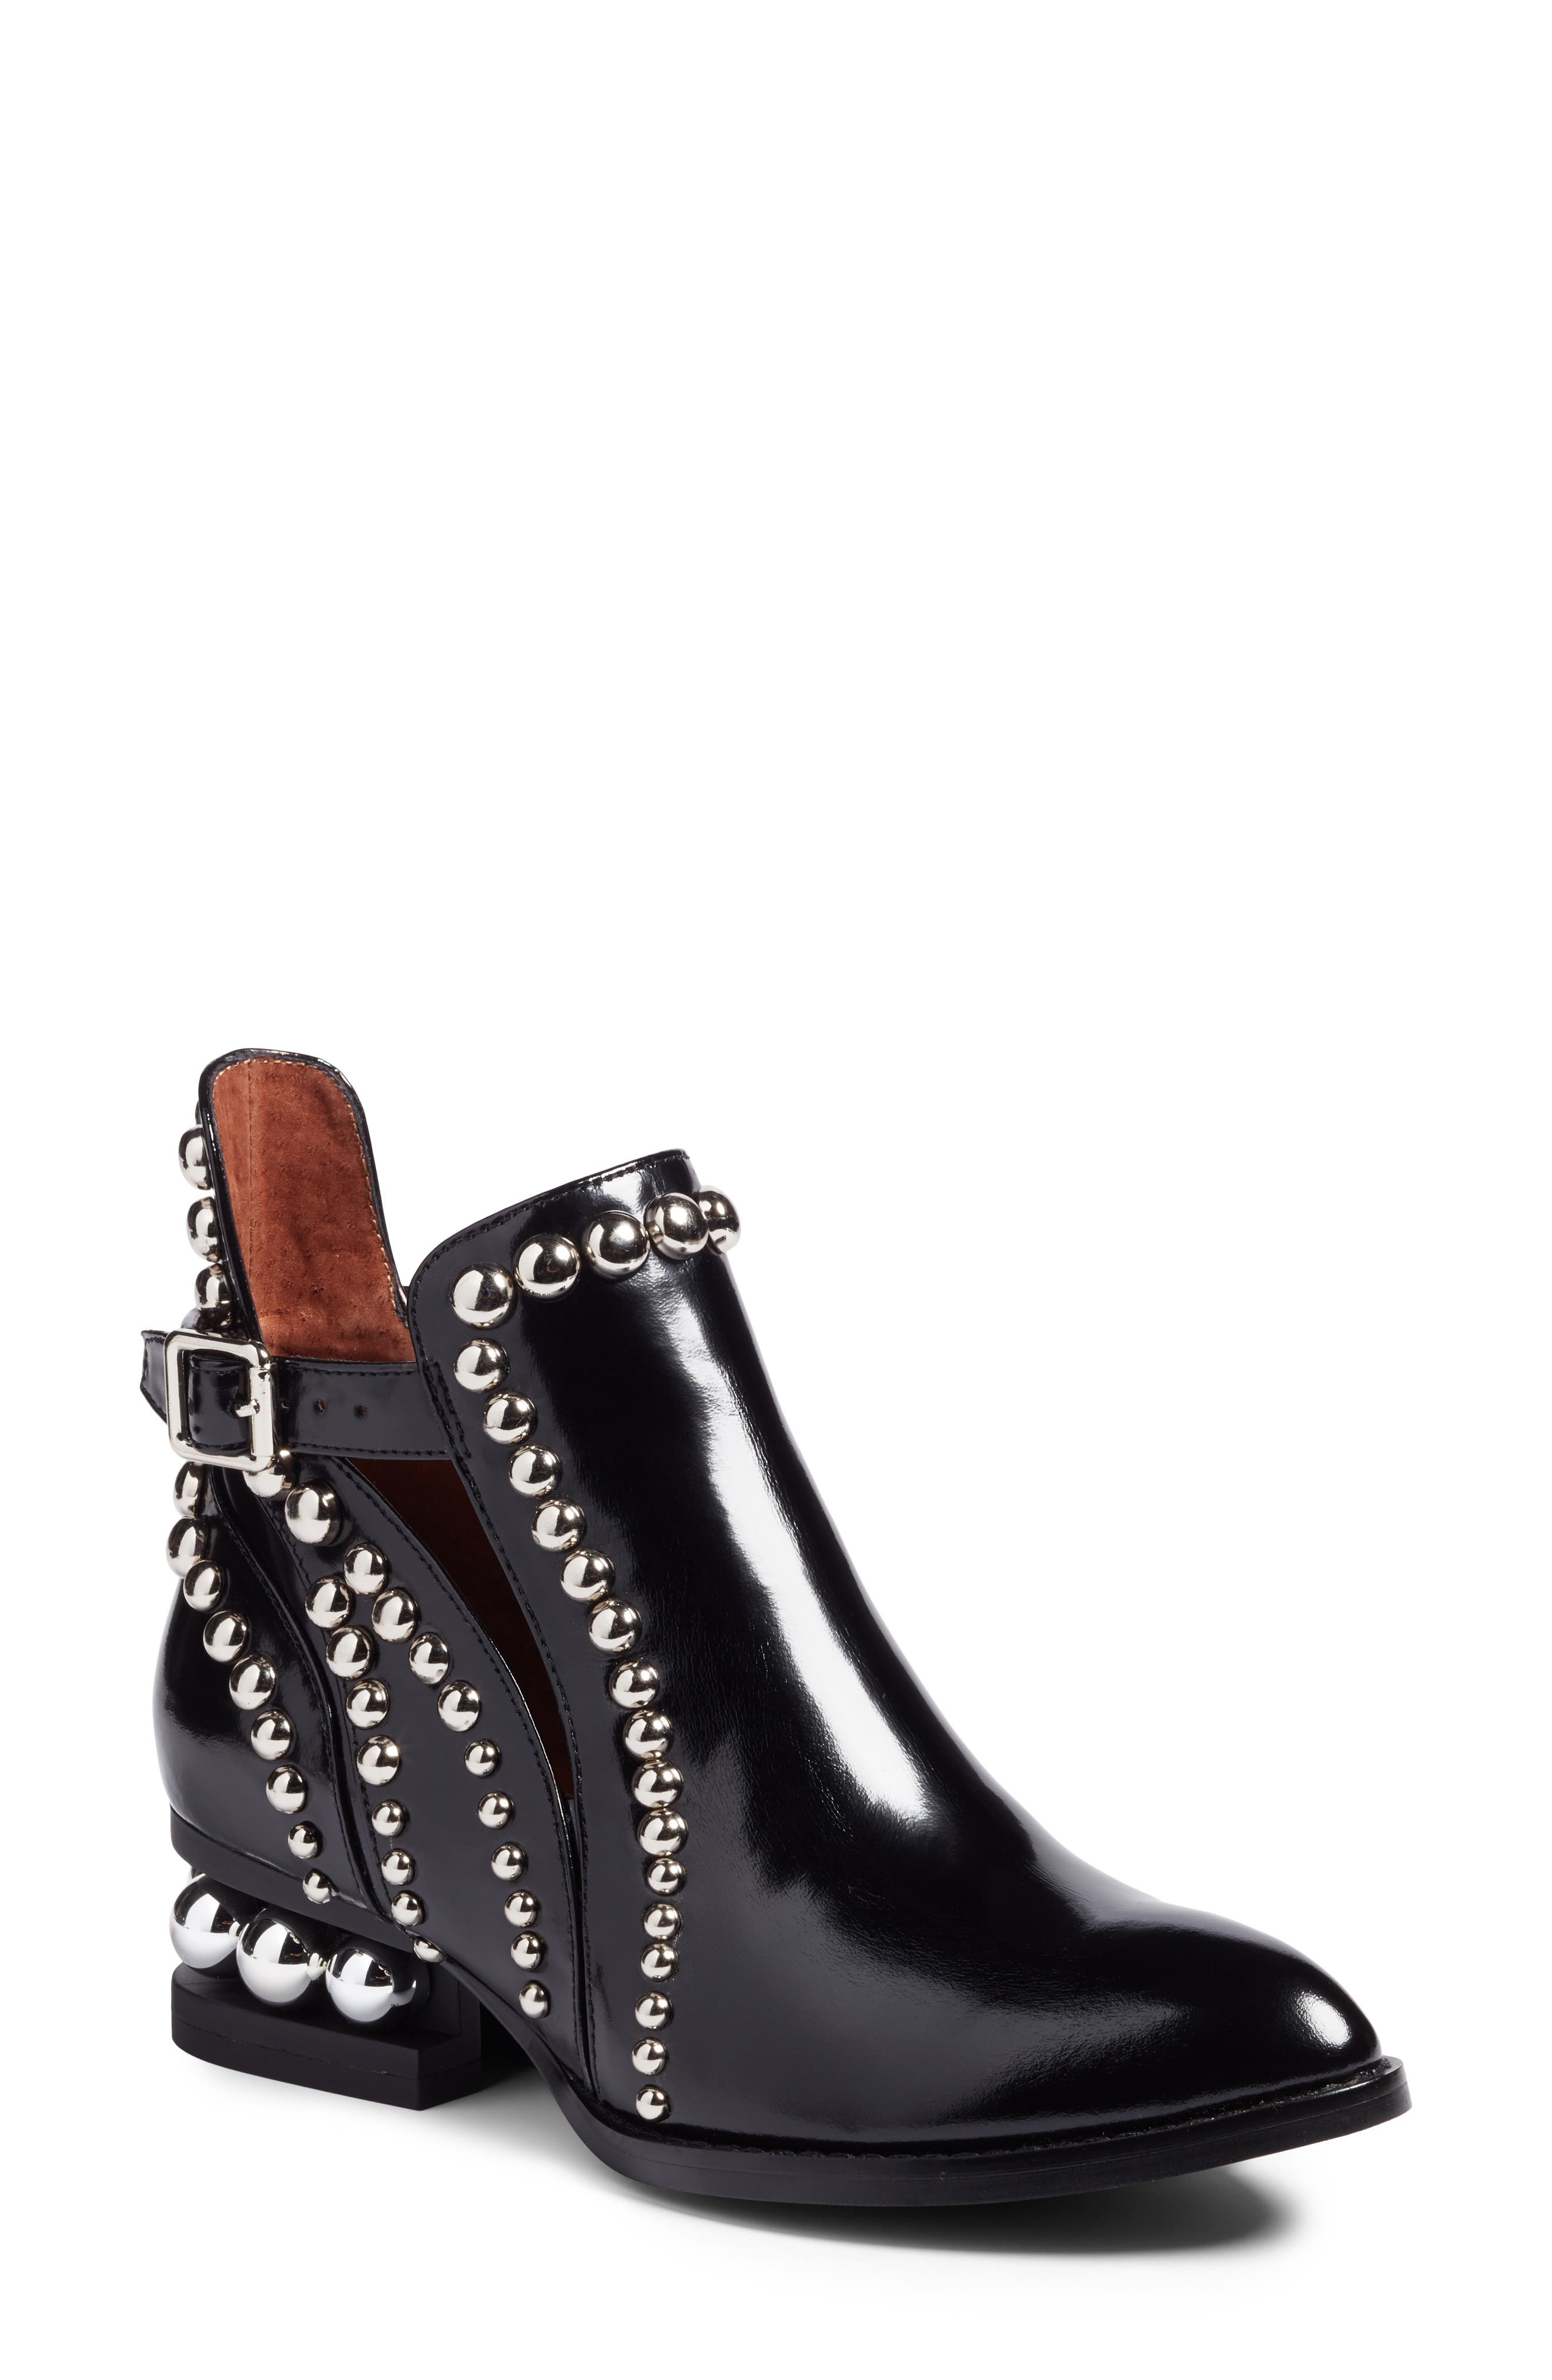 JEFFREY CAMPBELL Rylance Studded Bootie, Main, color, BLACK BOX SILVER LEATHER